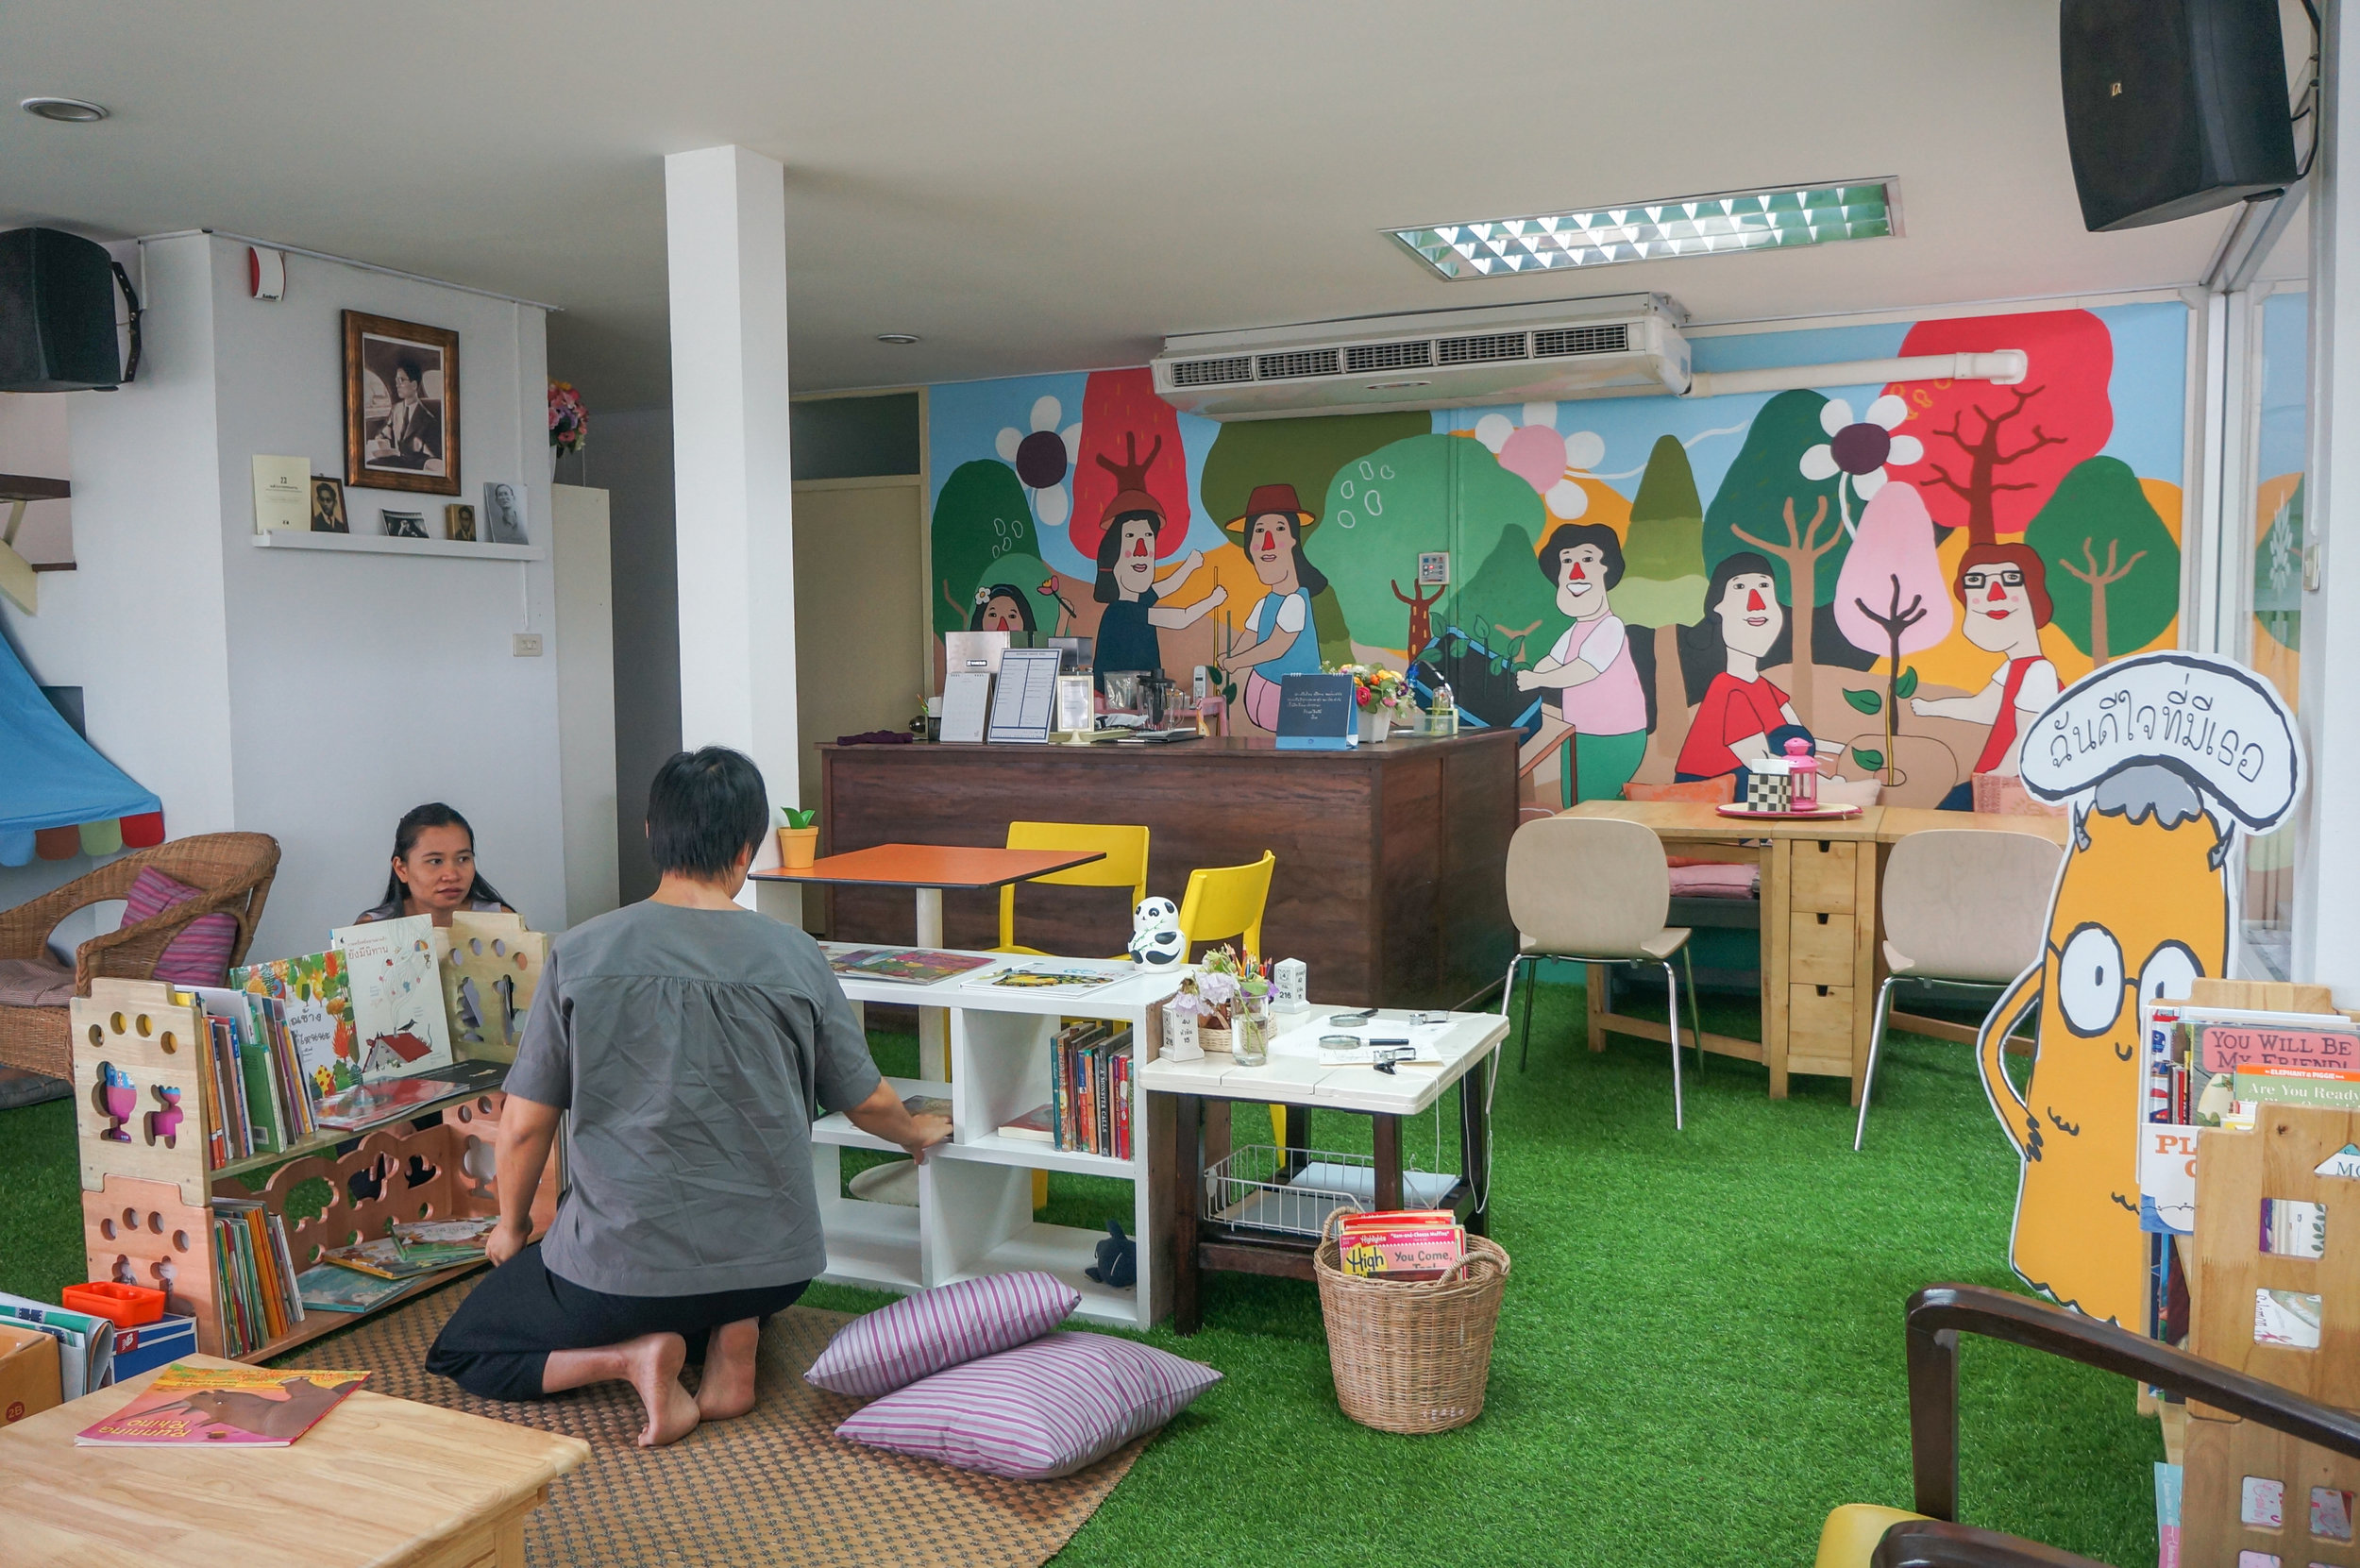 Blue Door Creative Space: Renovation in Bangkok